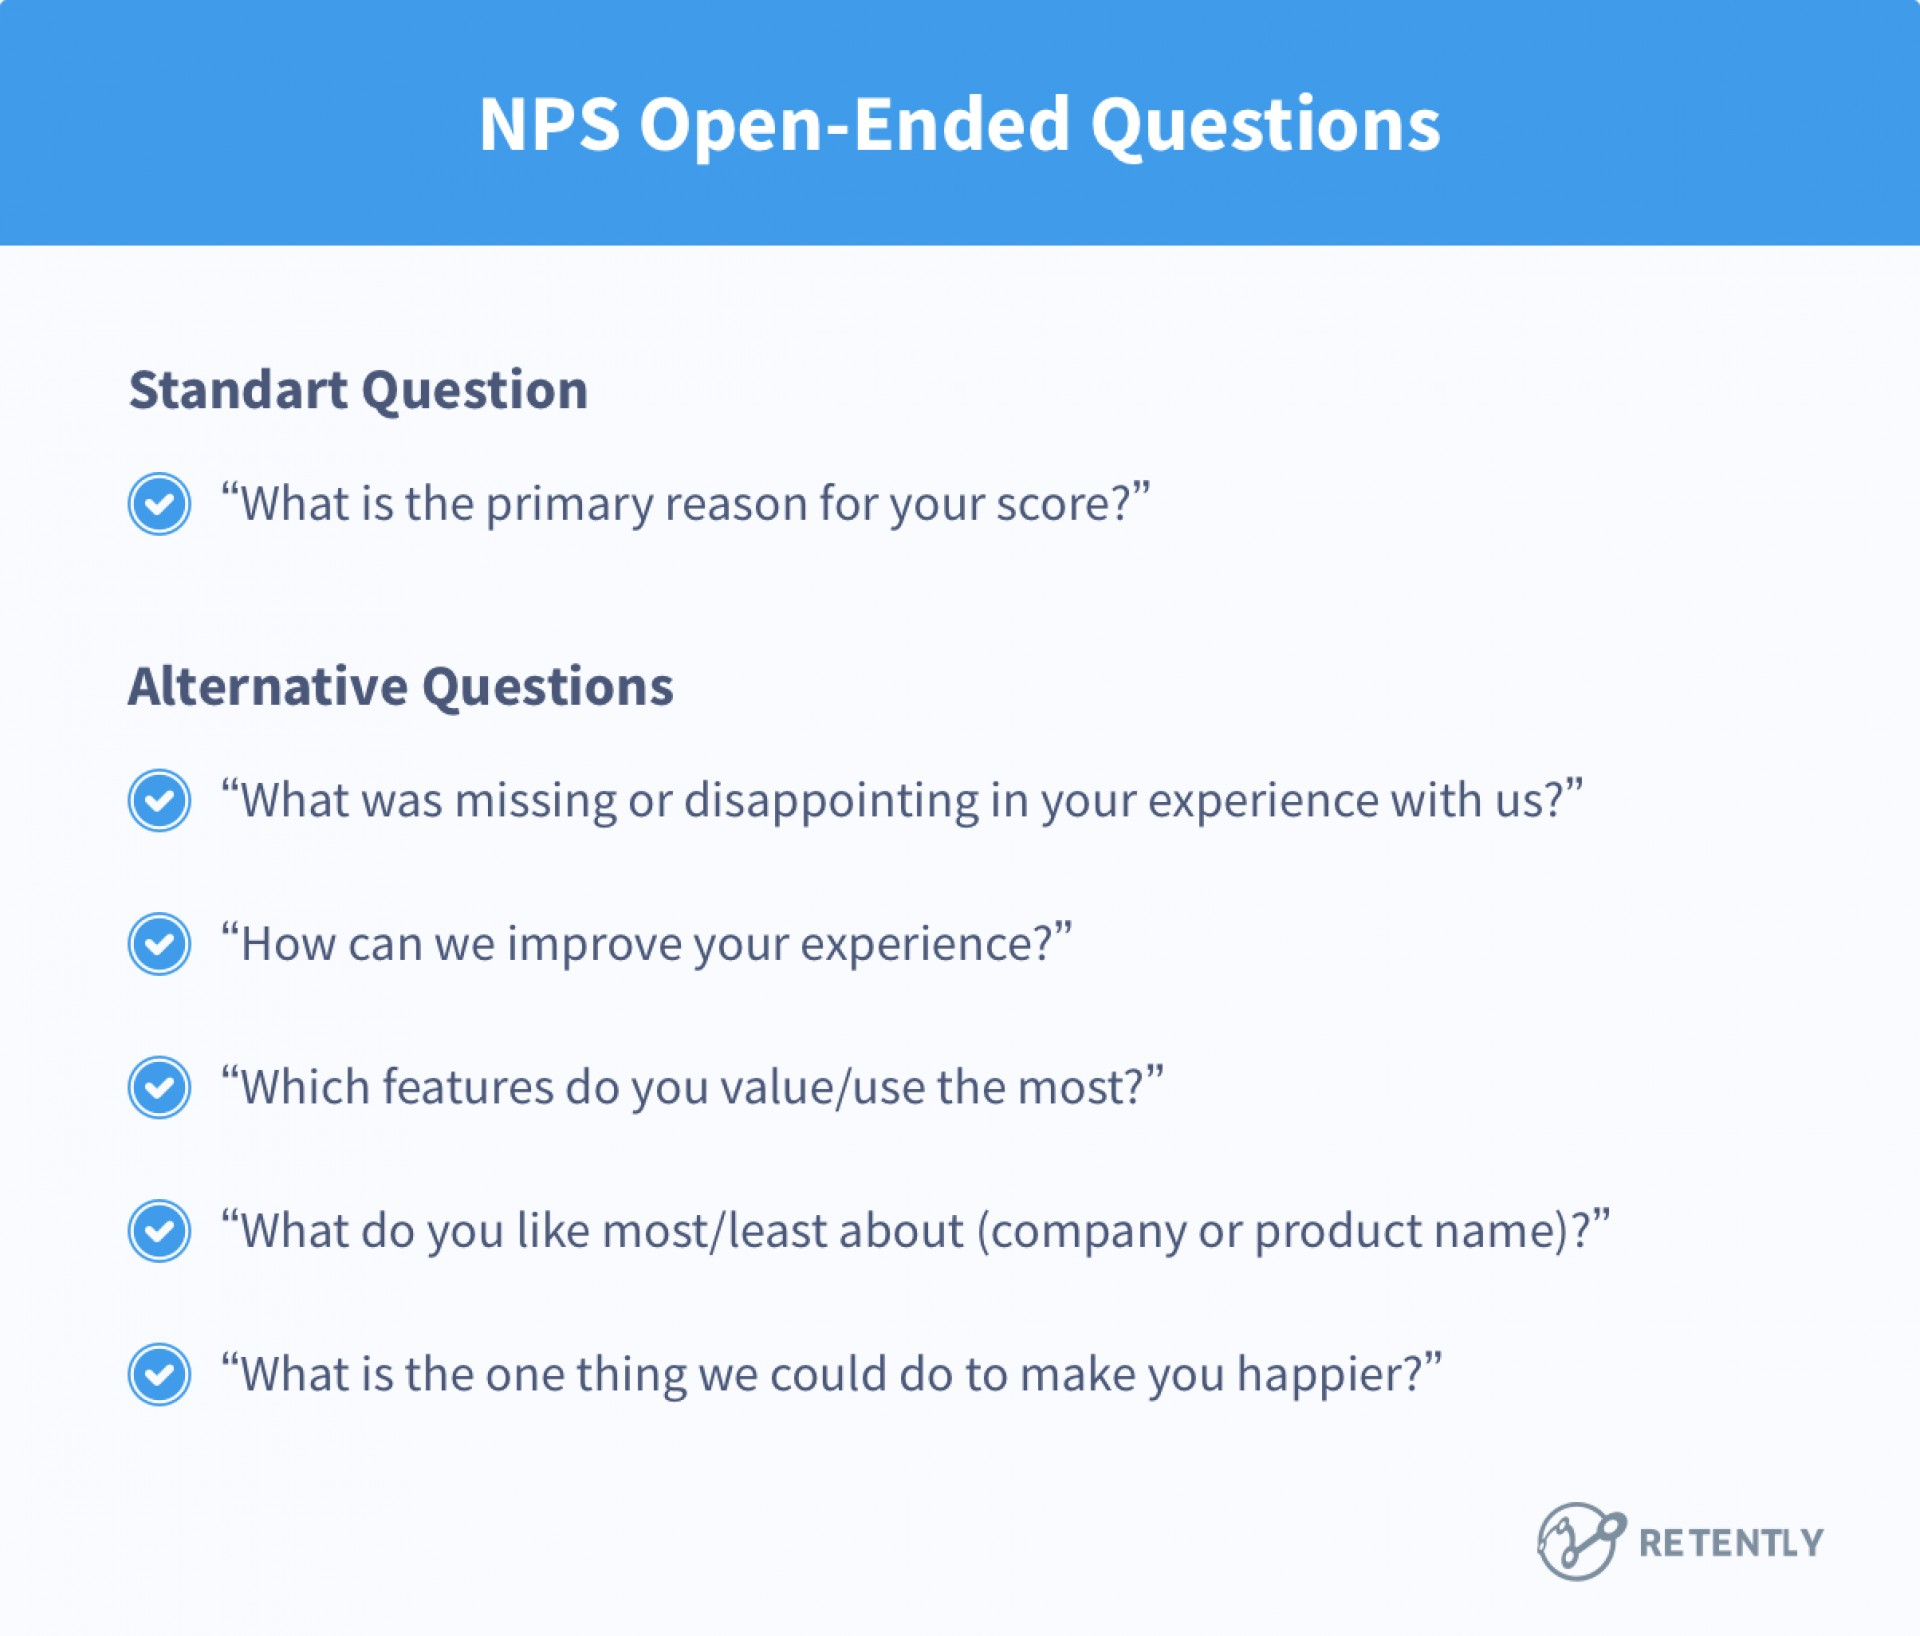 011 Research Paper Market Questionnaire Sample Questions Pdf Open Ended Nps Striking 1920